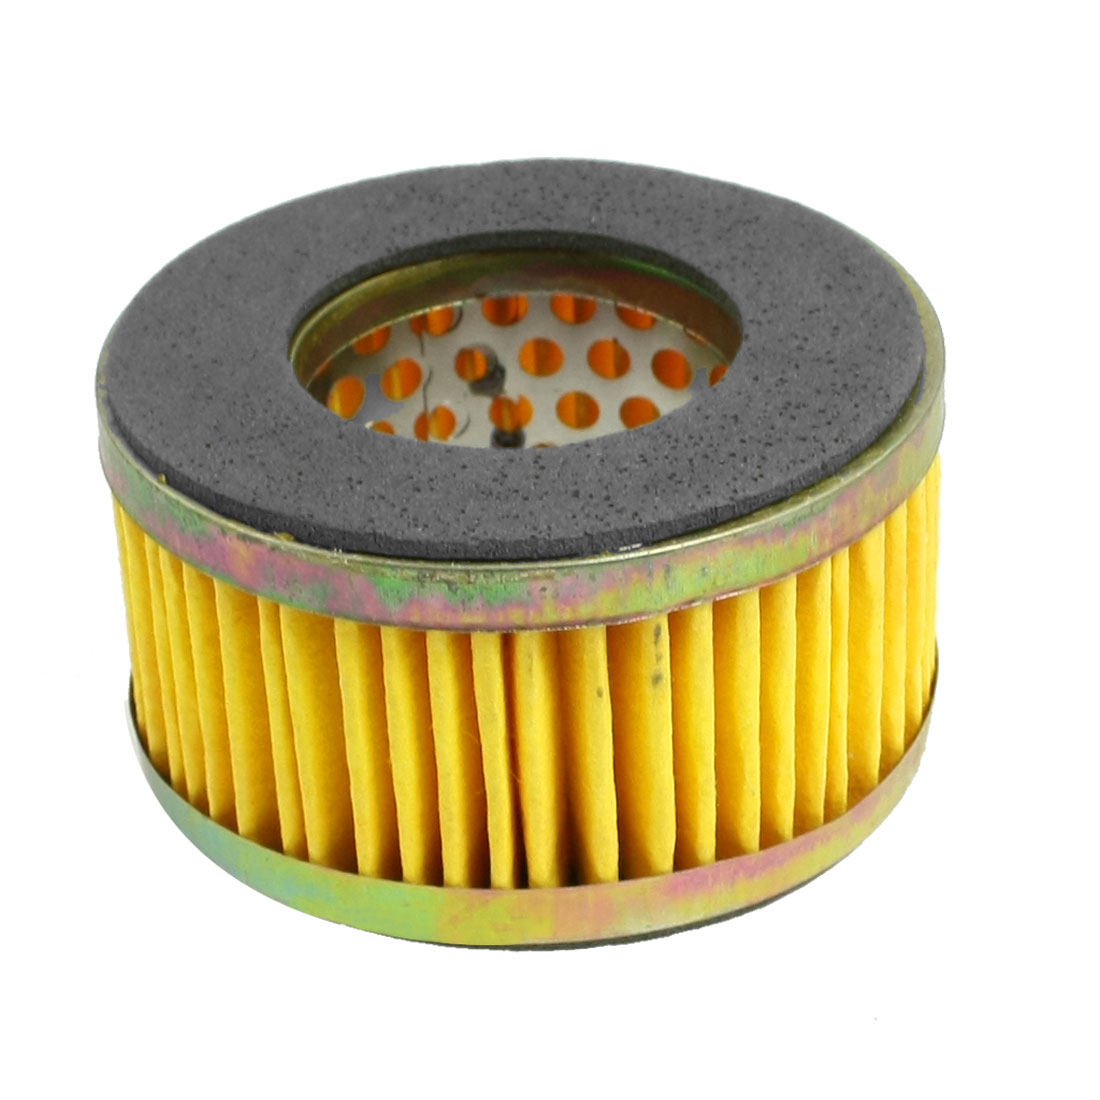 35mm-Inside-Diameter-Car-Air-Compressor-Element-Filter-Spare-Part